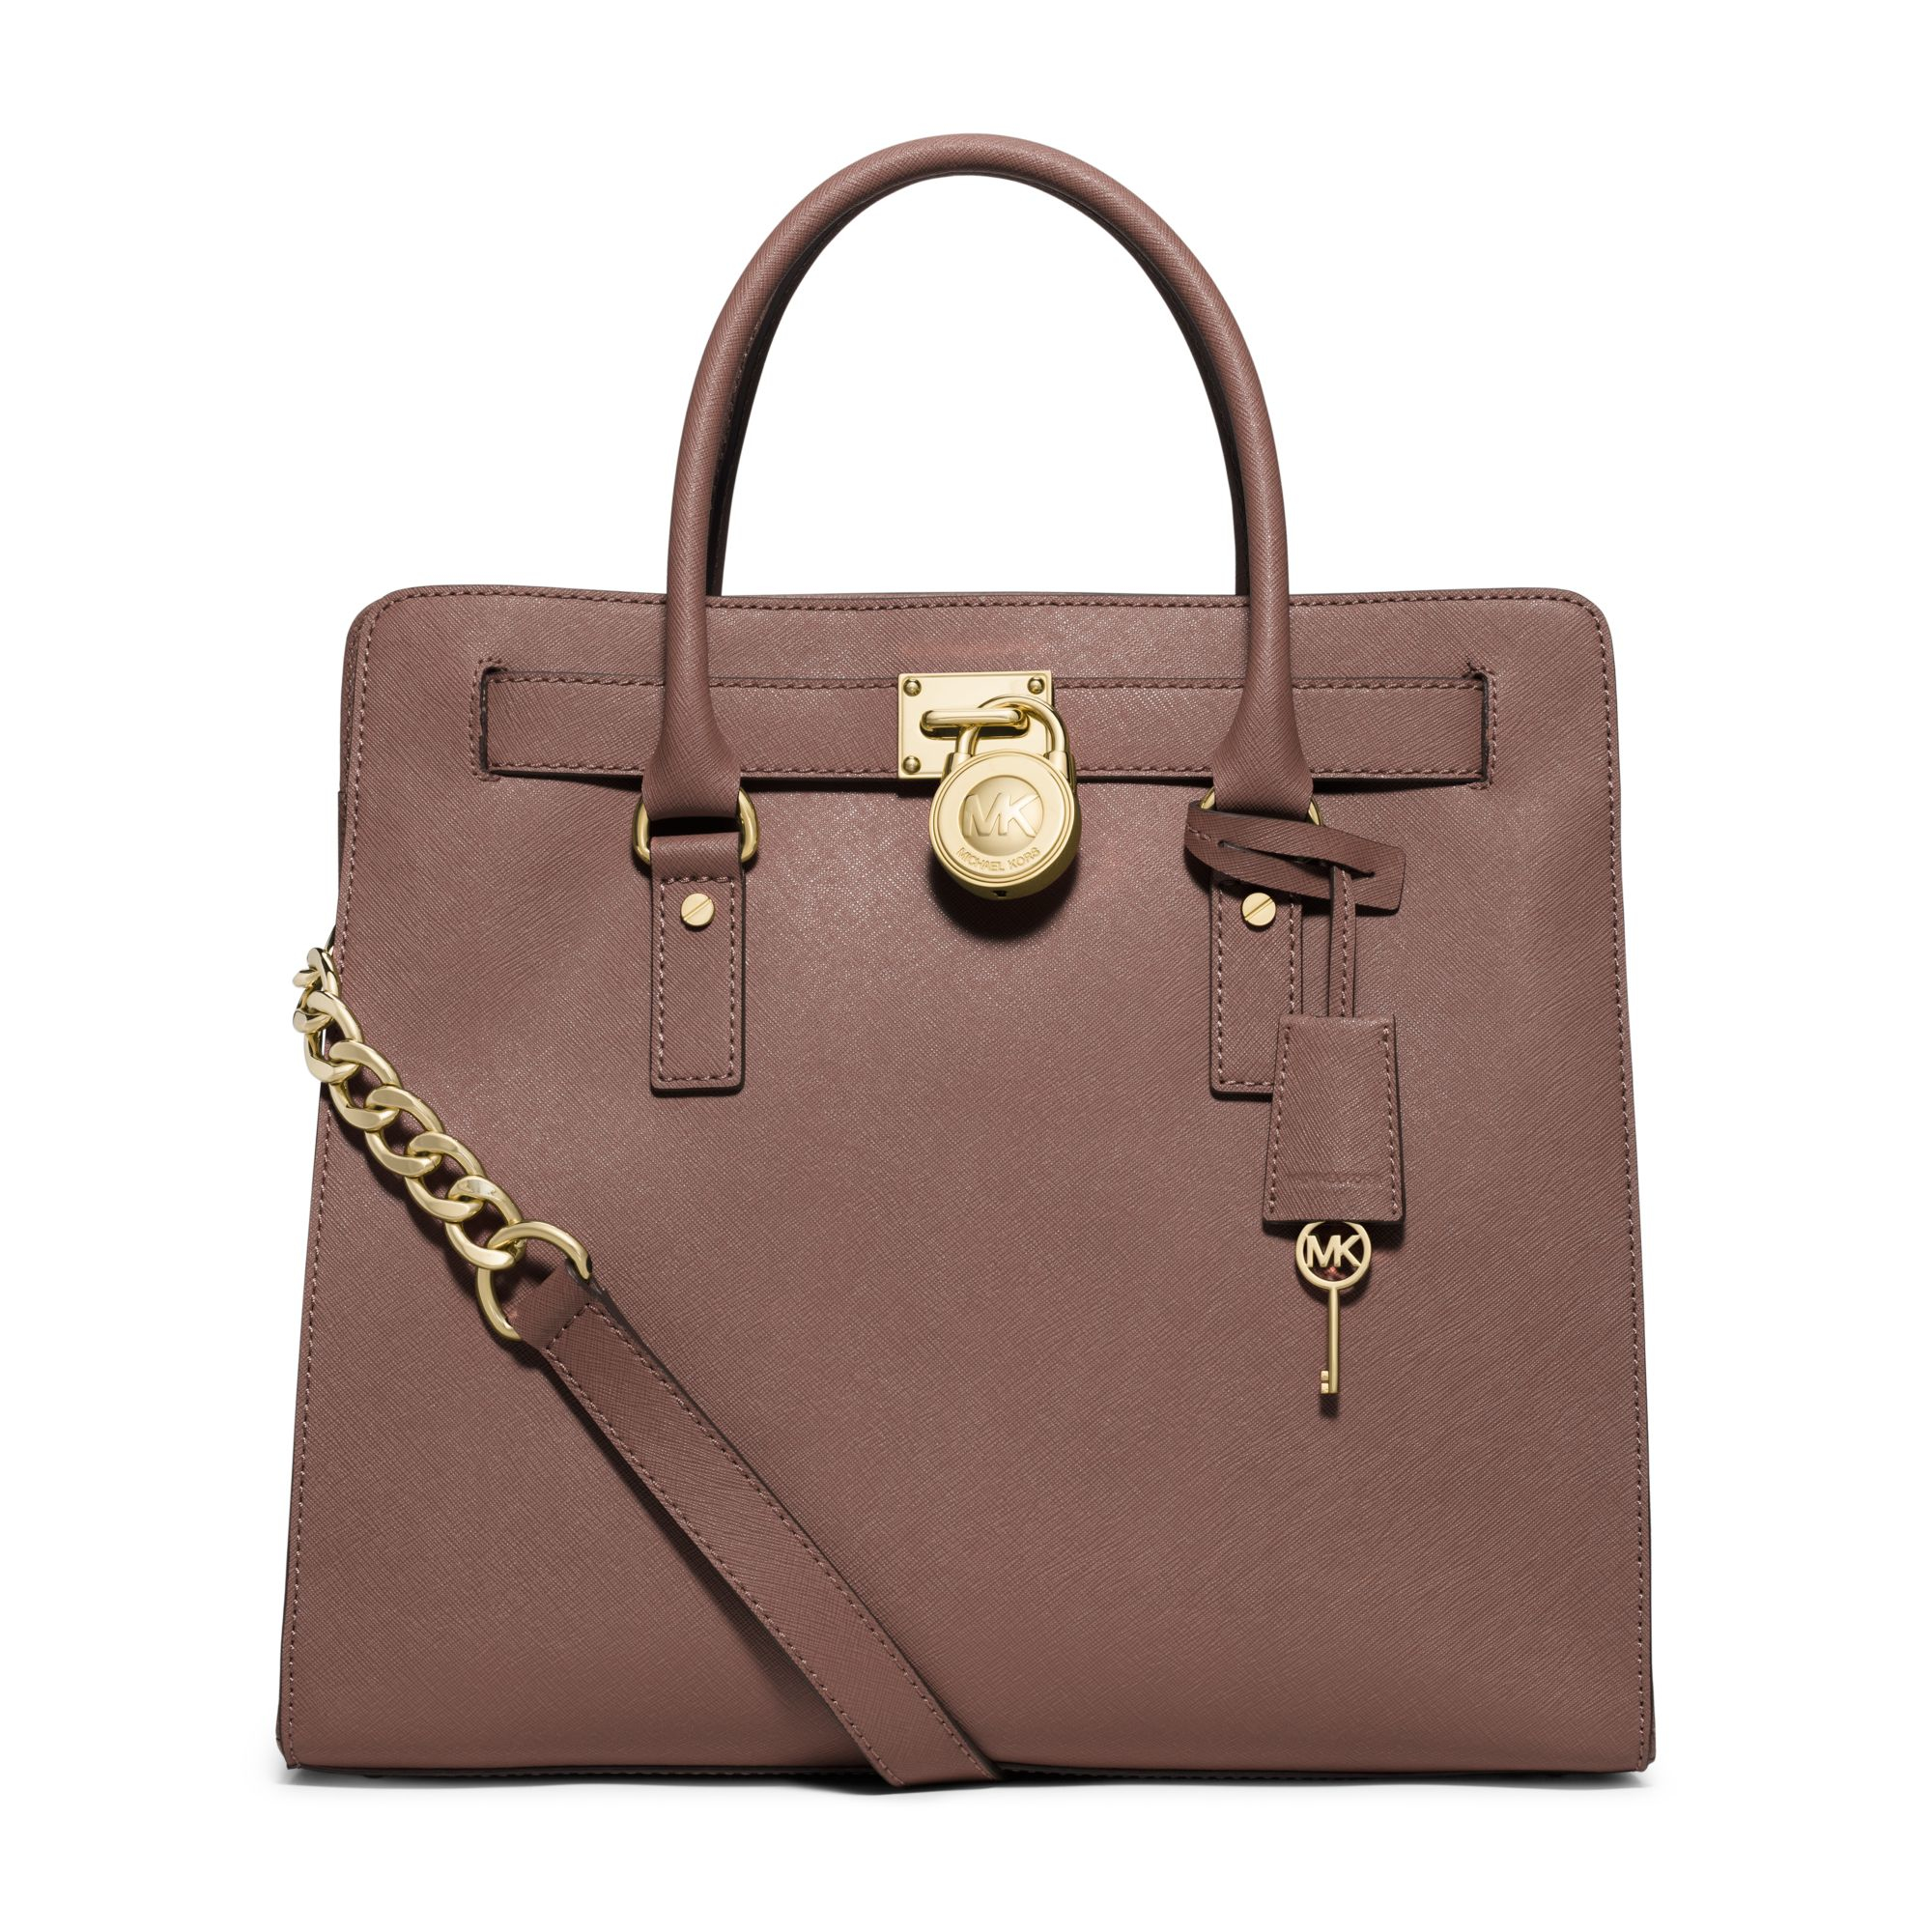 ff6484d94eb8 Michael Kors Saffiano Tote Large | Stanford Center for Opportunity ...